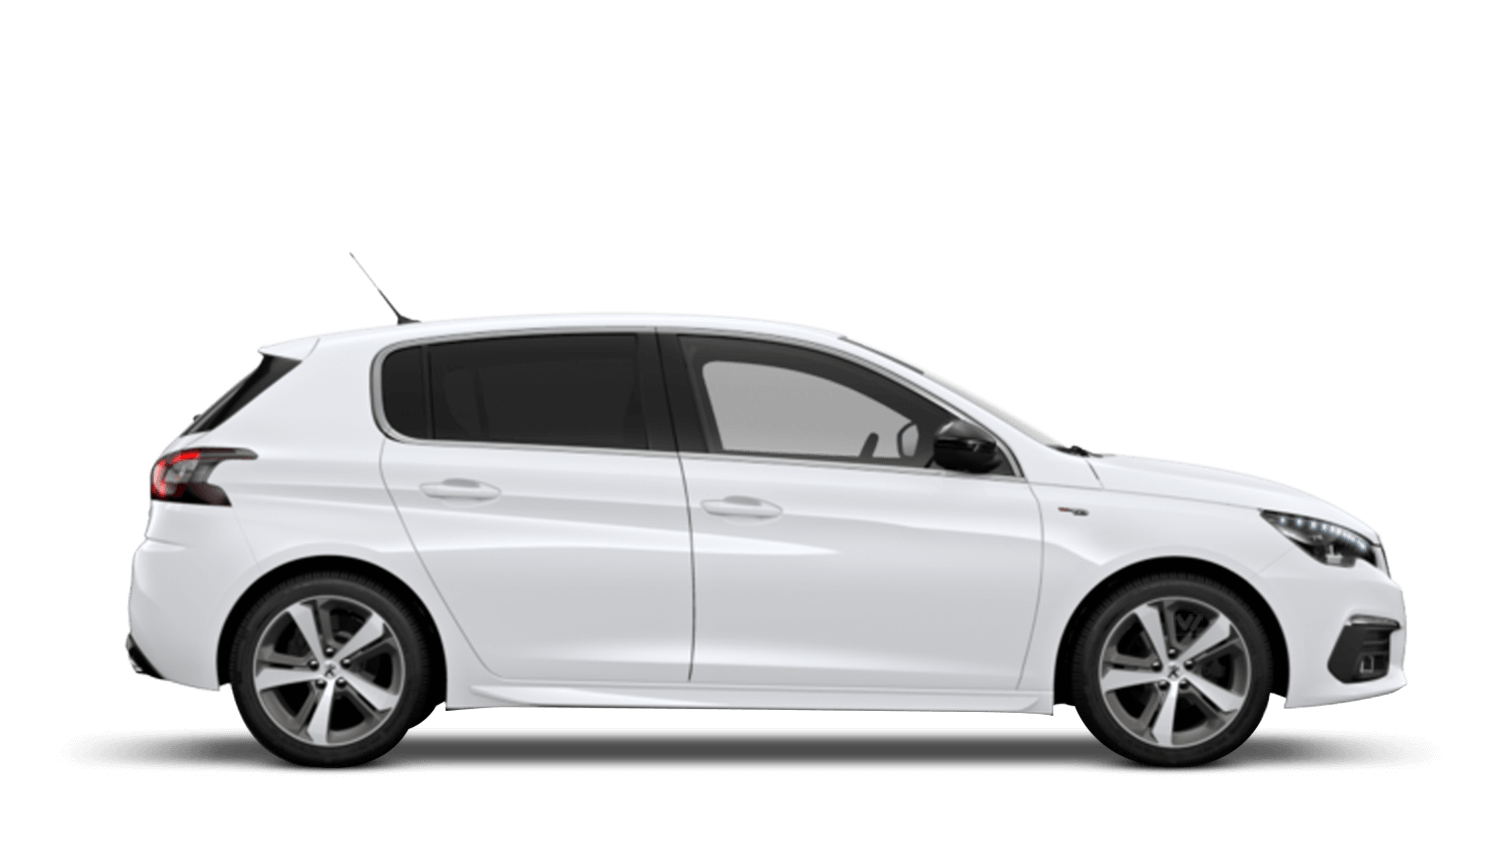 Bianca White New Peugeot 308